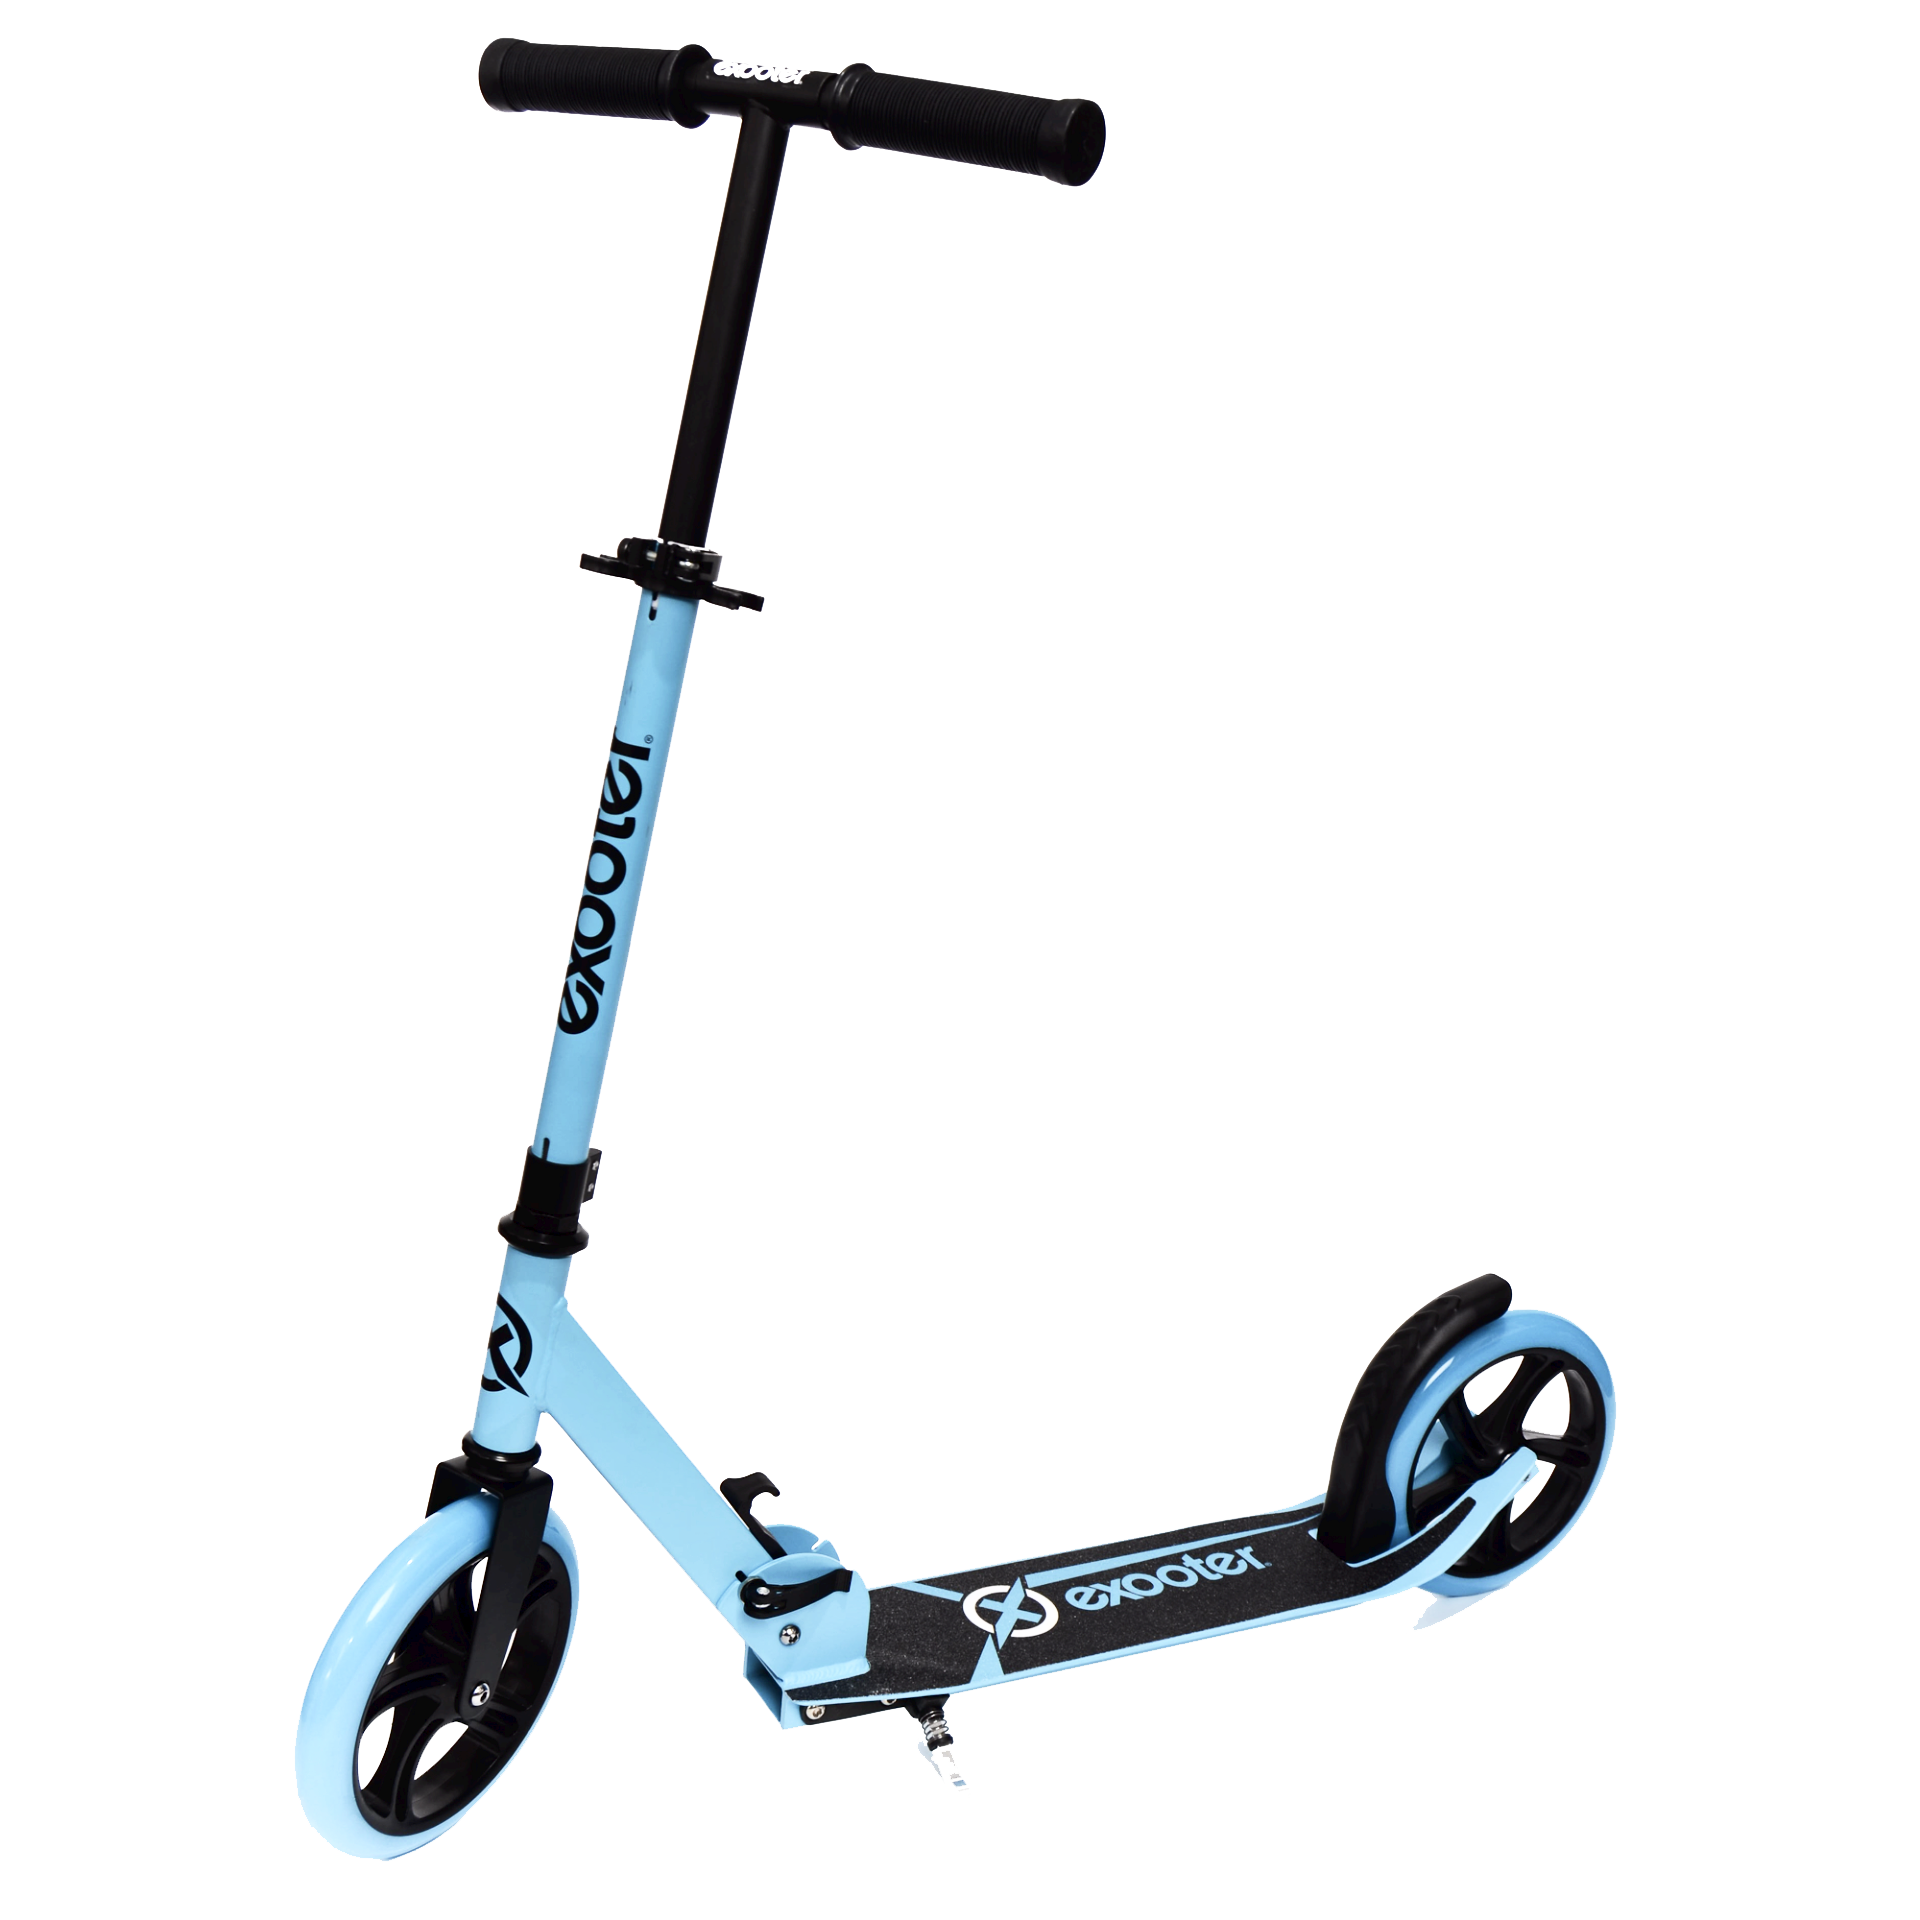 Scooter clipart cute. Kick png transparent image